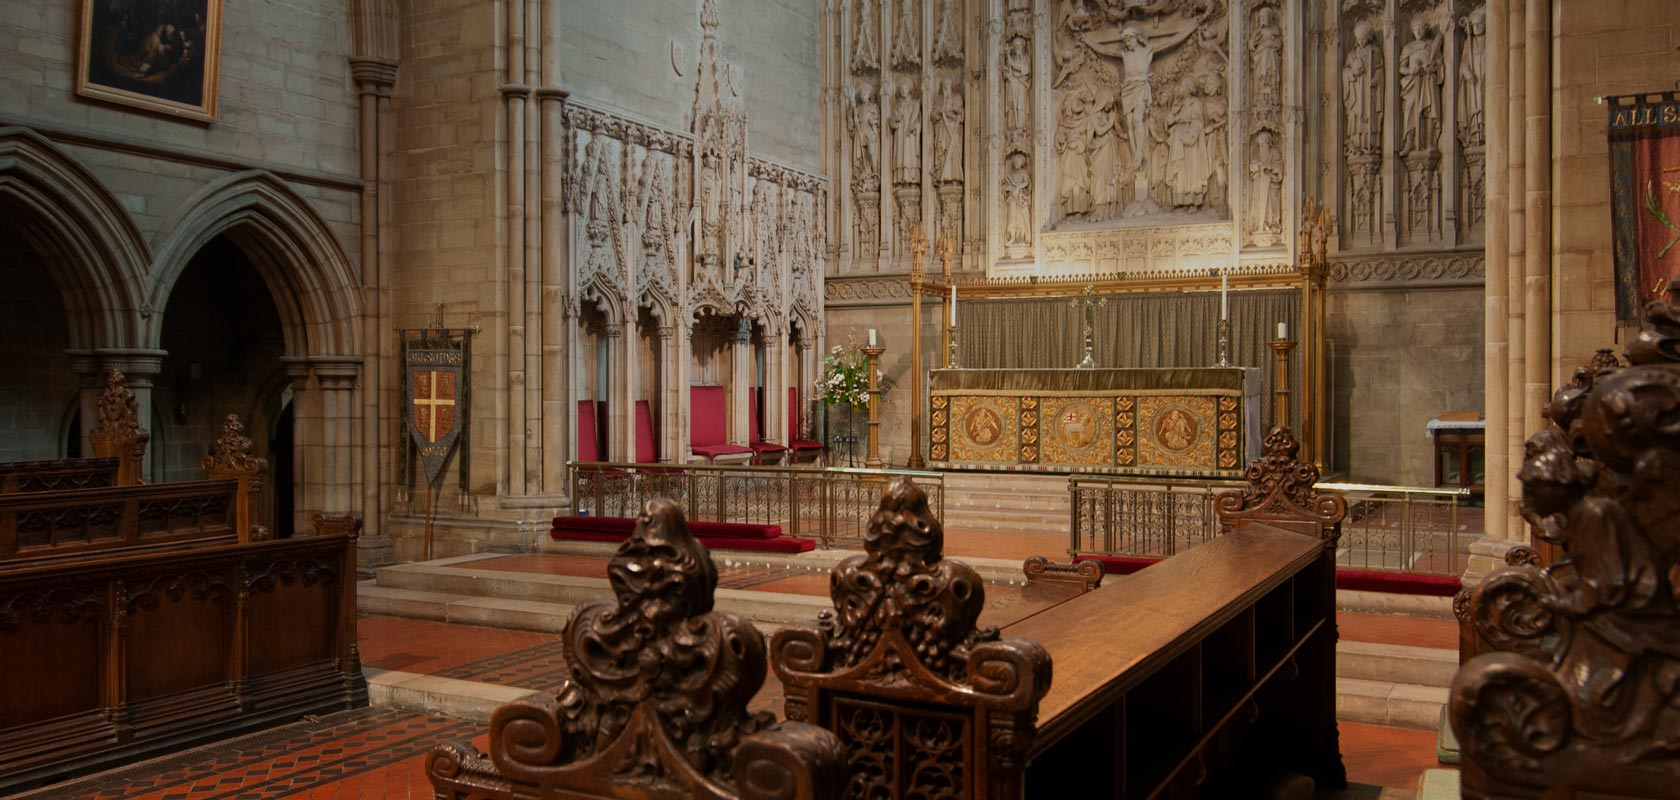 High altar at All Saints Hove, viewed from the choir stalls